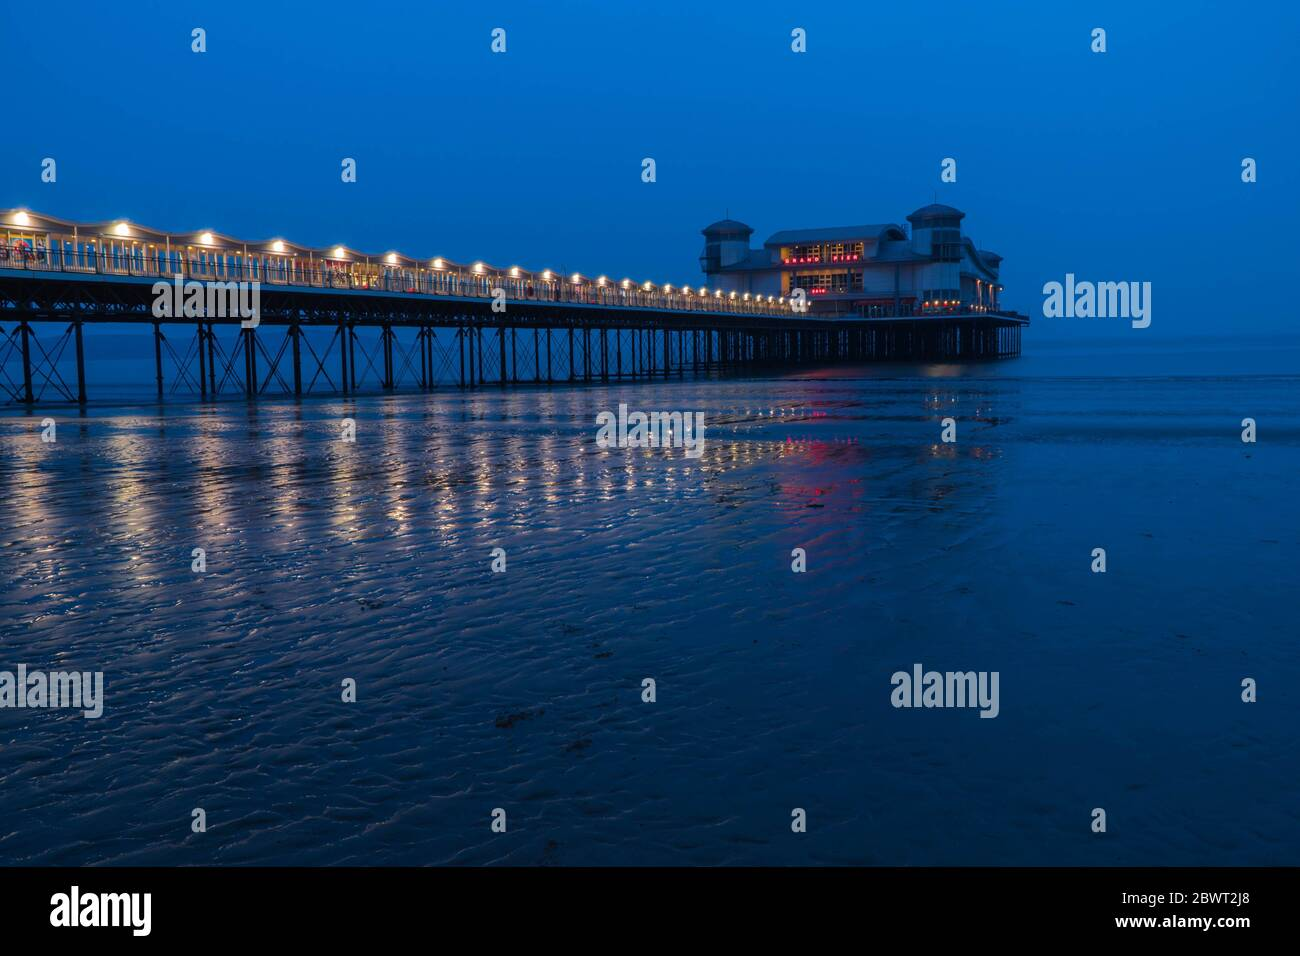 The Grand Pier reaching out into the Bristol Channel at Weston-super-Mare, Somersert England UK. April 2019. Stock Photo